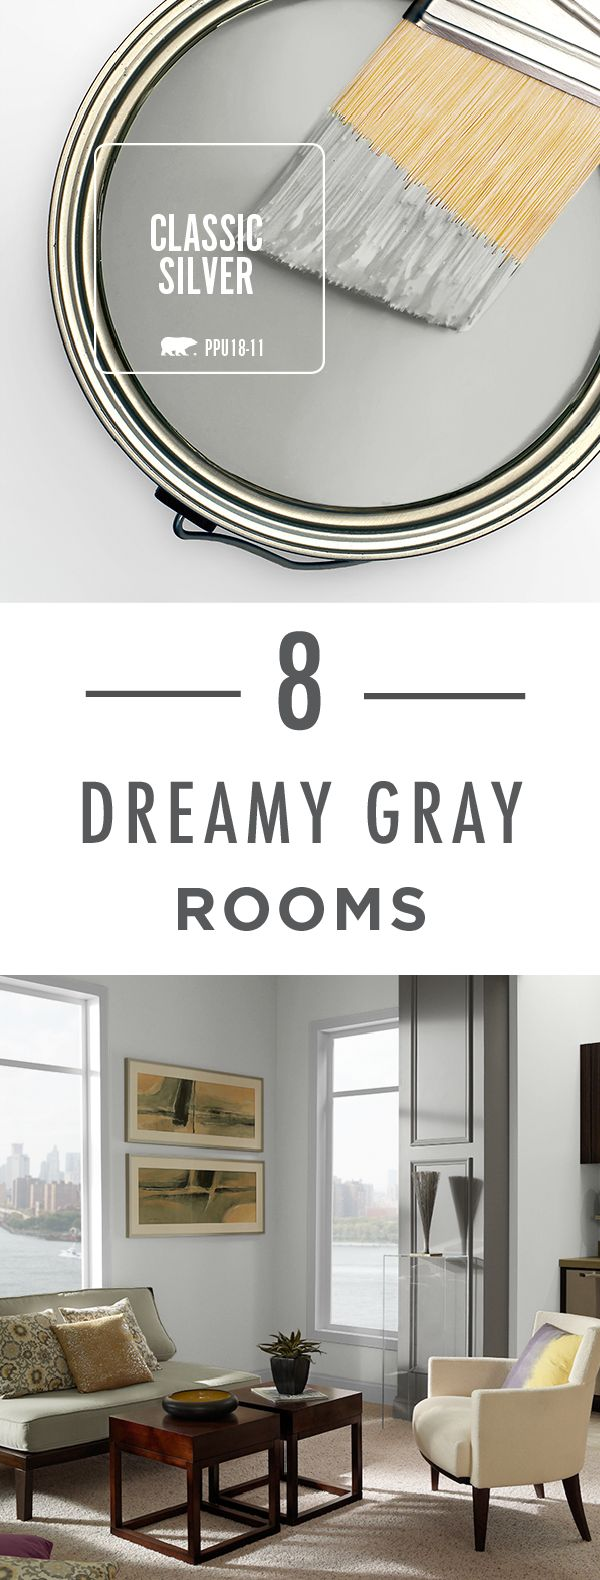 99 Best Images About Gray And Black Rooms On Pinterest